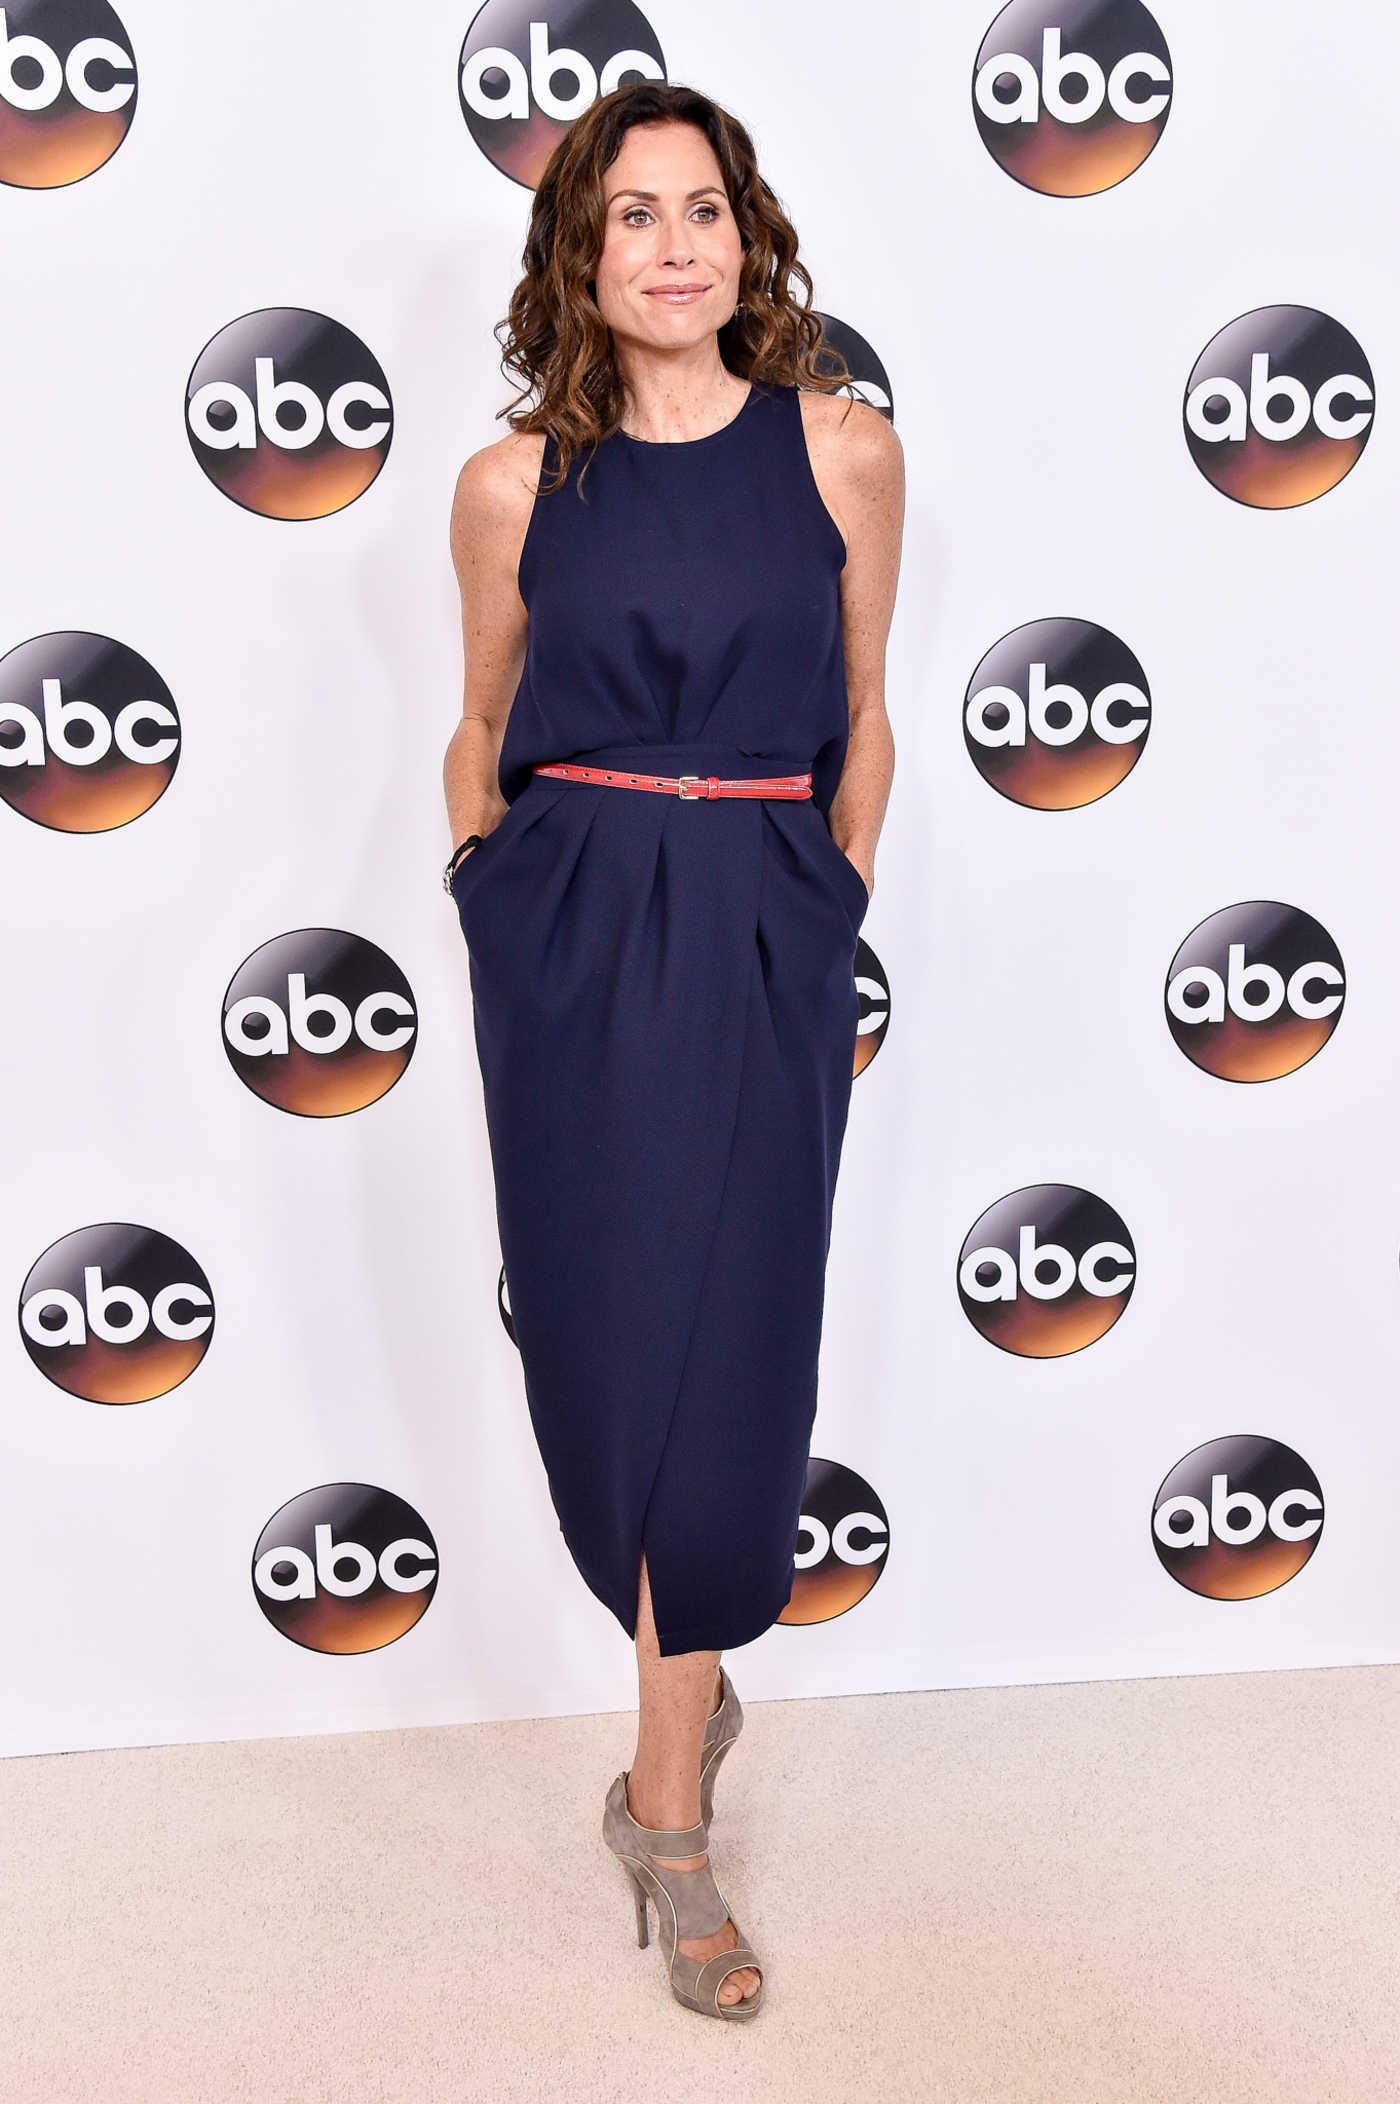 Minnie Driver at Disney ABC Television Hosts 2016 TCA Summer Press Tour in Beverly Hills 08/04/2016